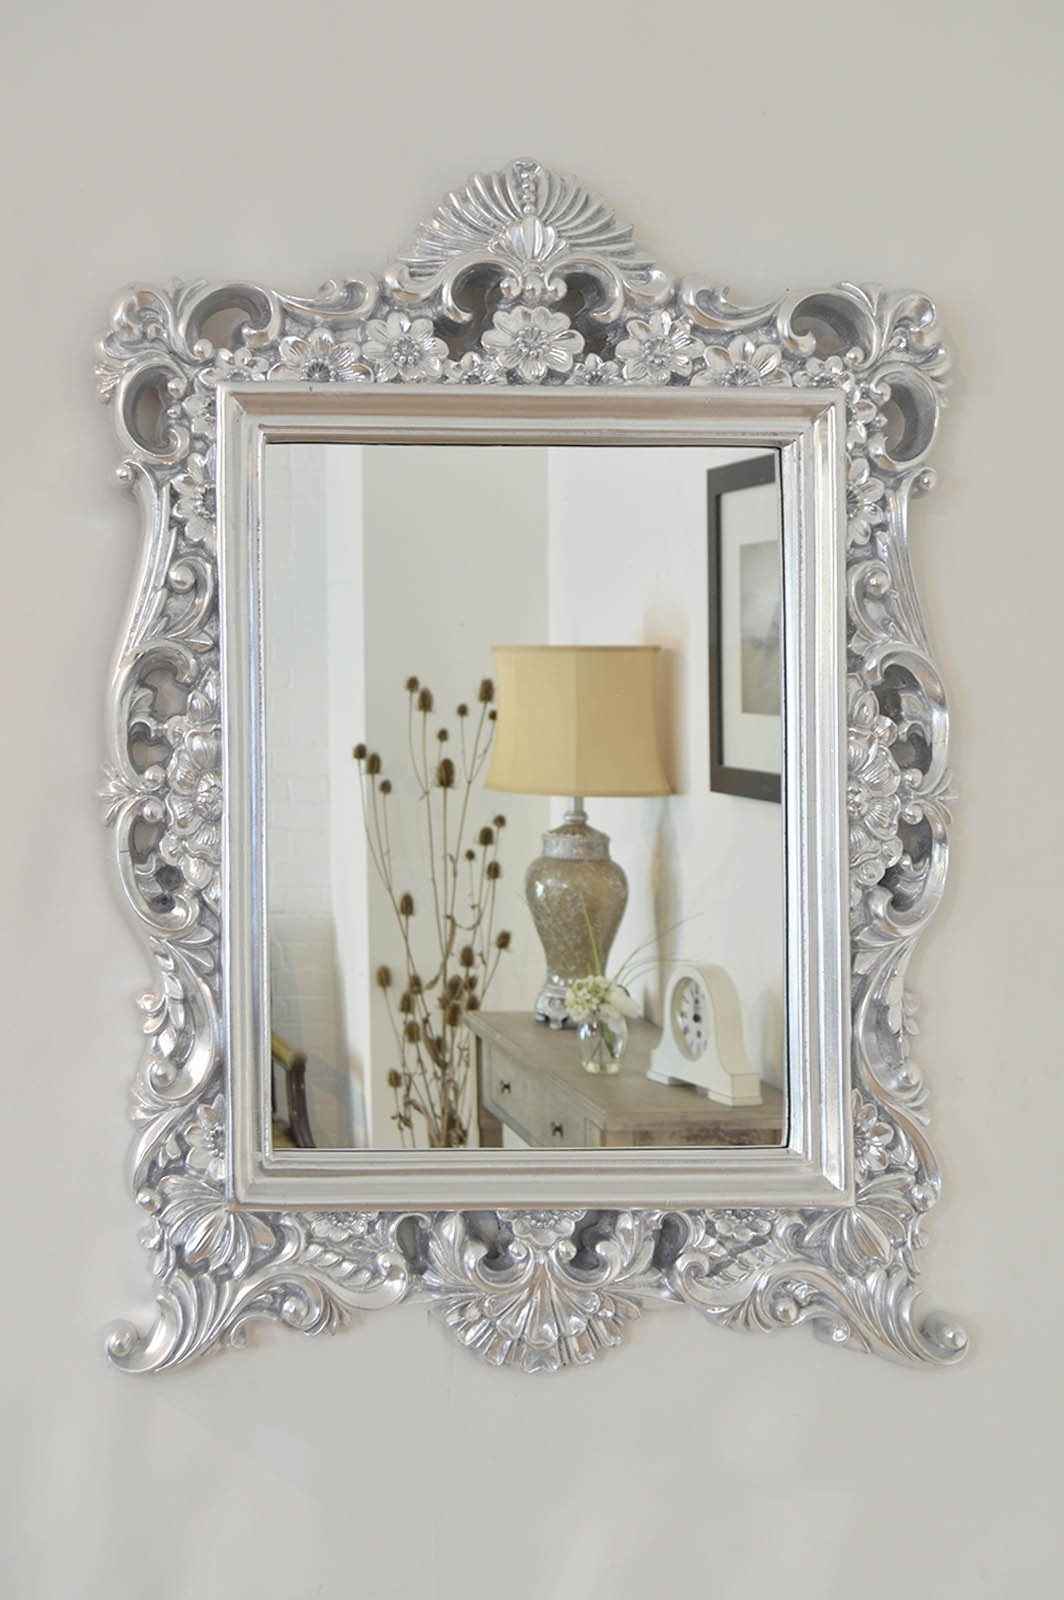 Large Silver Baroque Style Portrait Ornate Wall Mirror 2ft9 X 2ft1 Intended For Silver Ornate Mirror (Image 7 of 15)